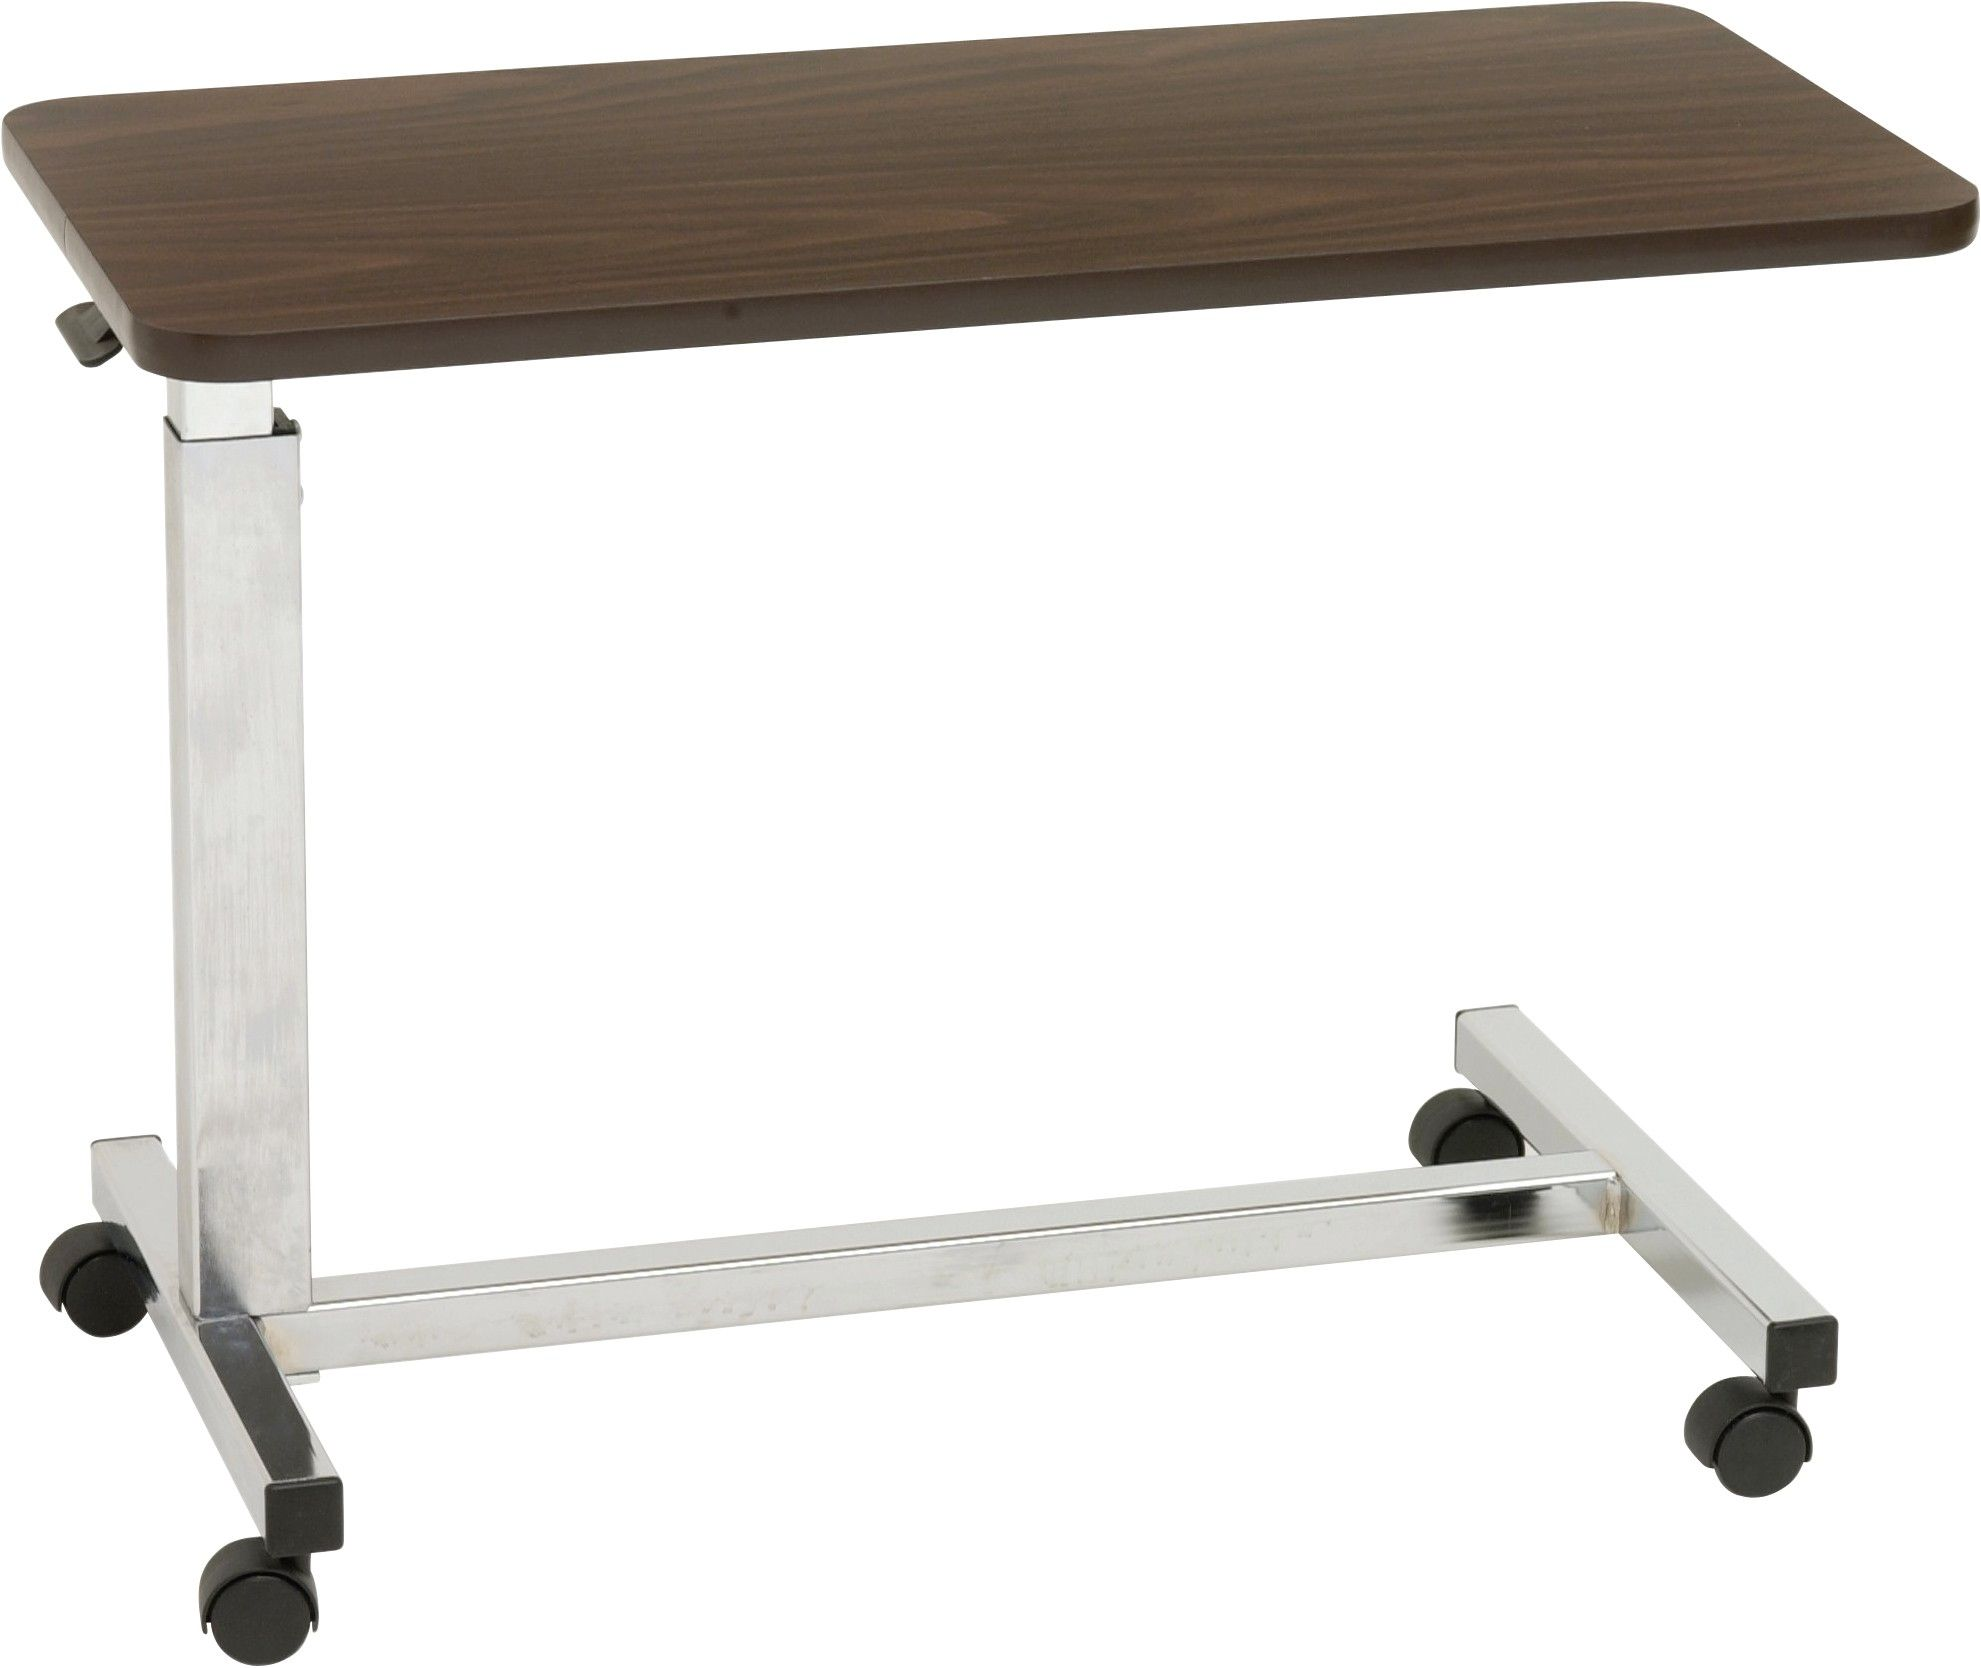 Low Height Overbed Table is designed specifically for use